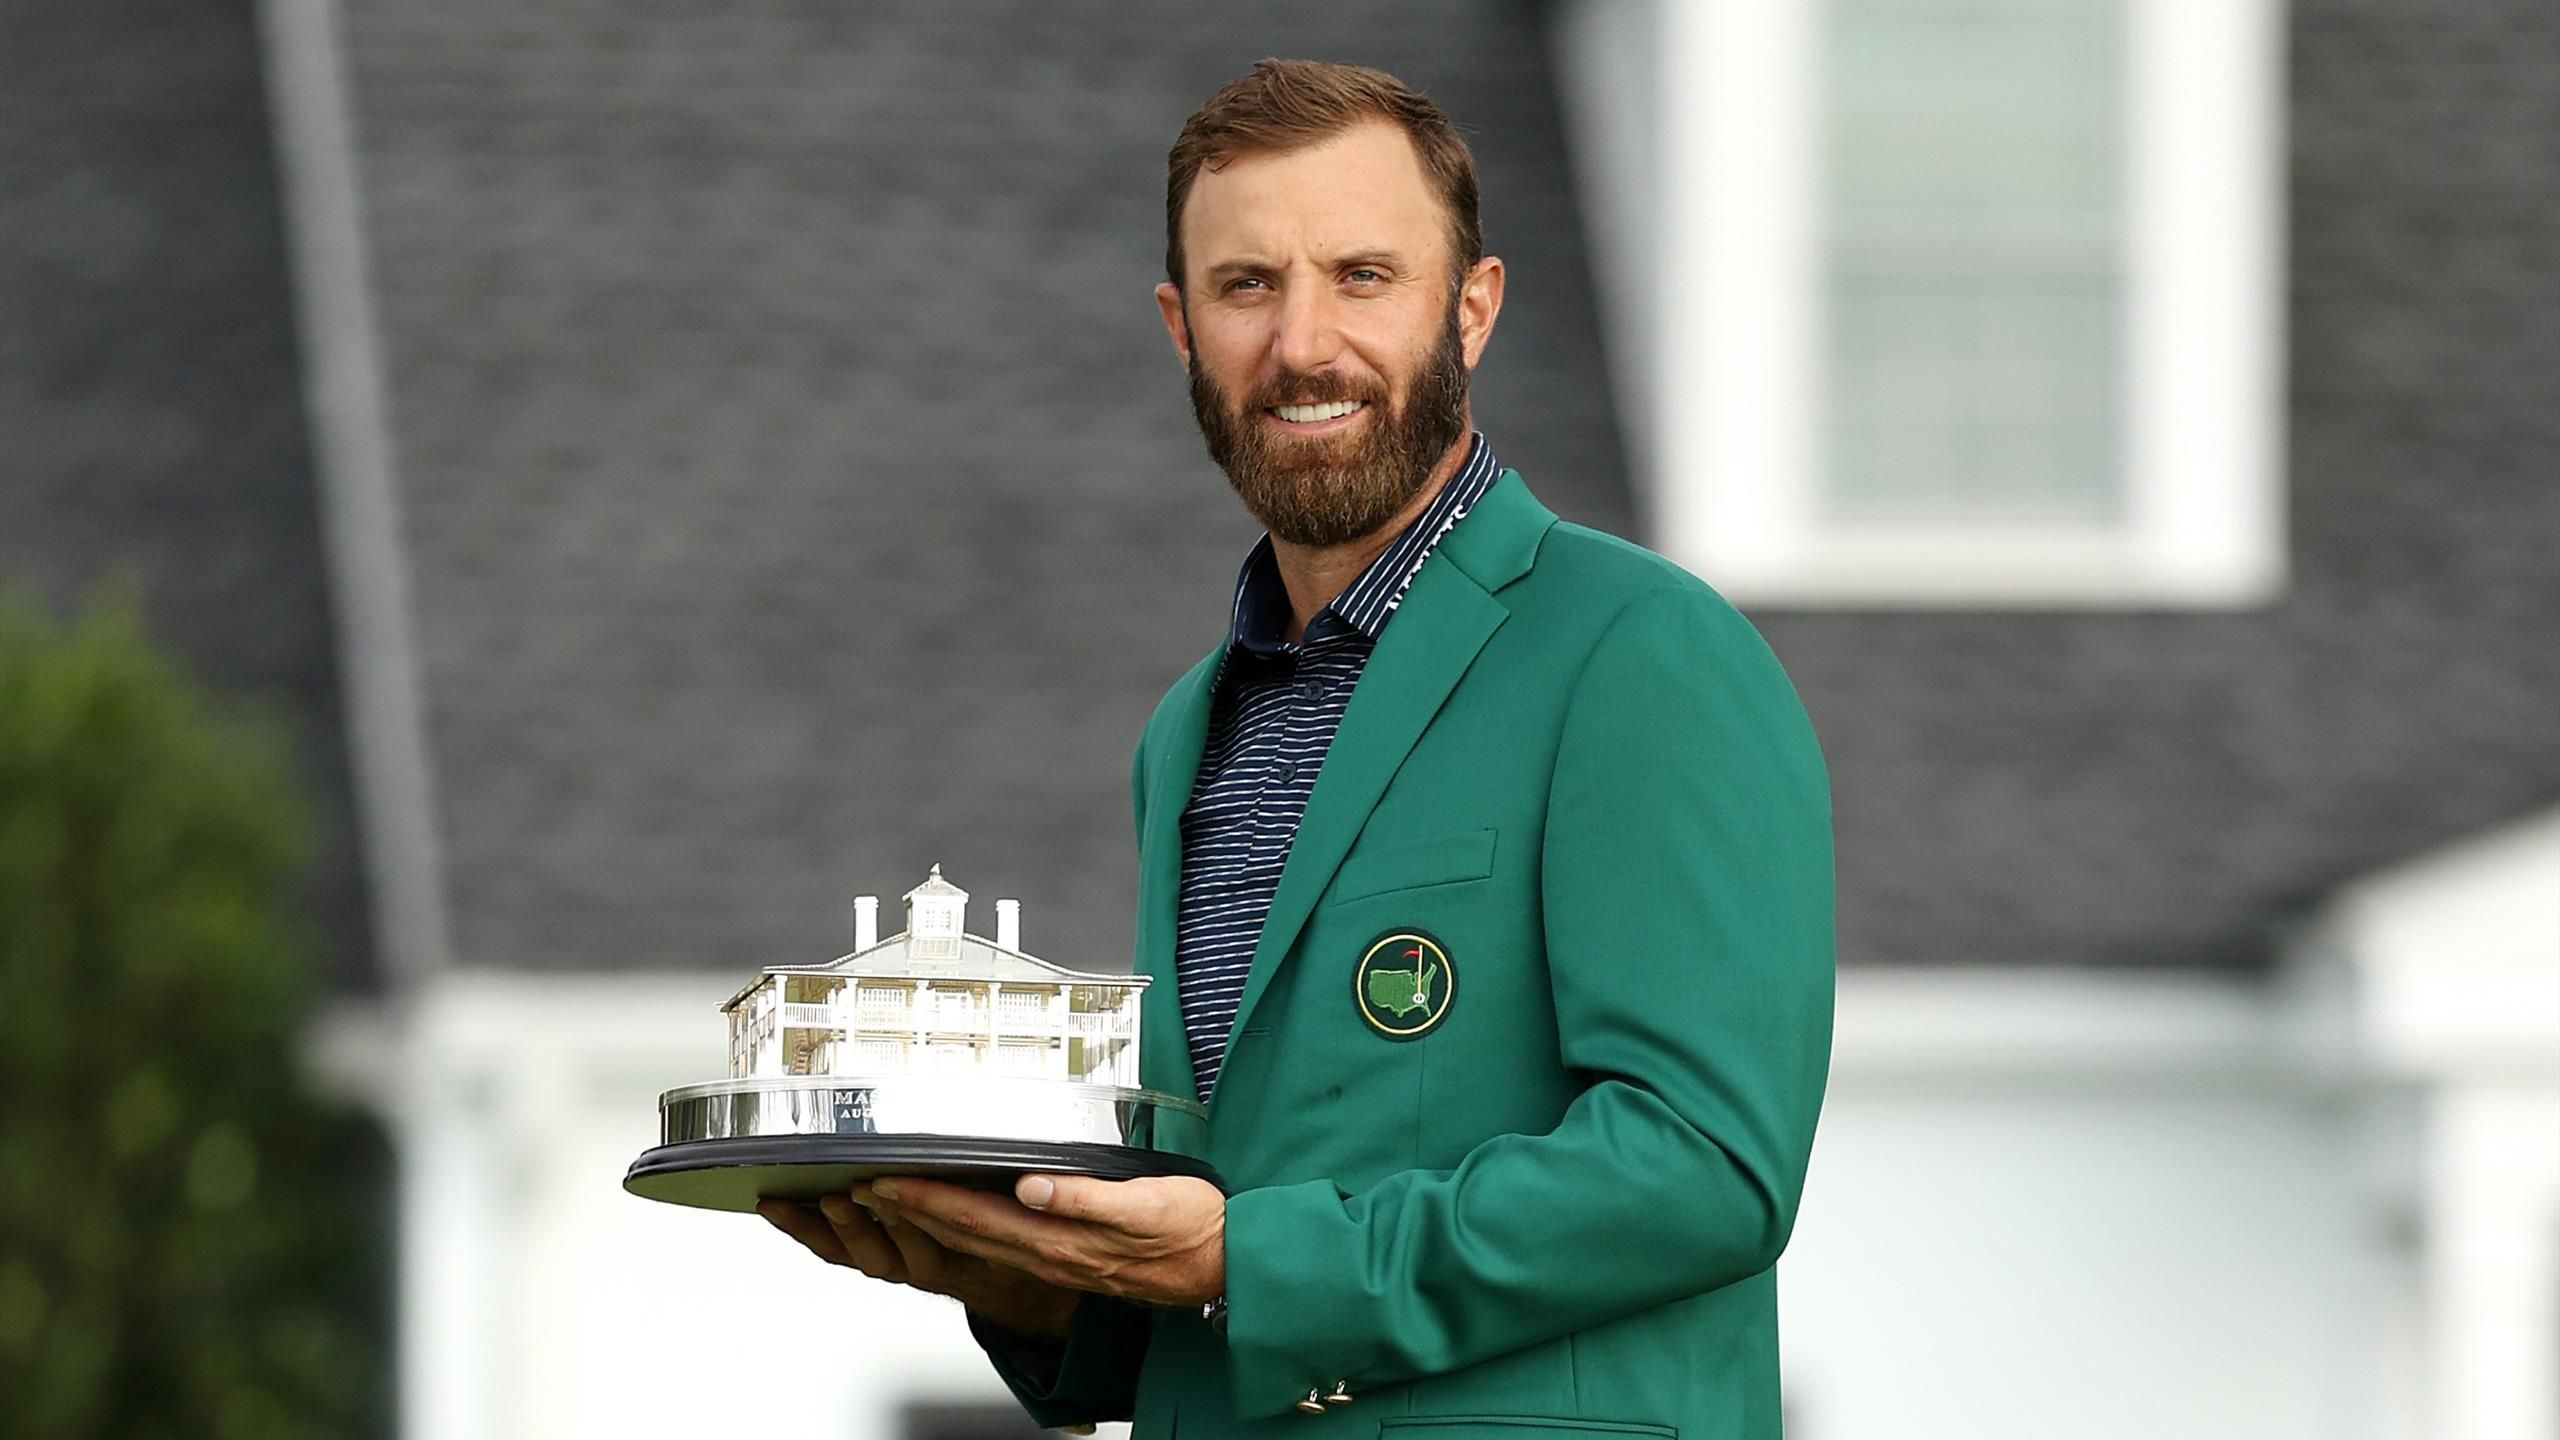 dustin shows masterly focus at augusta